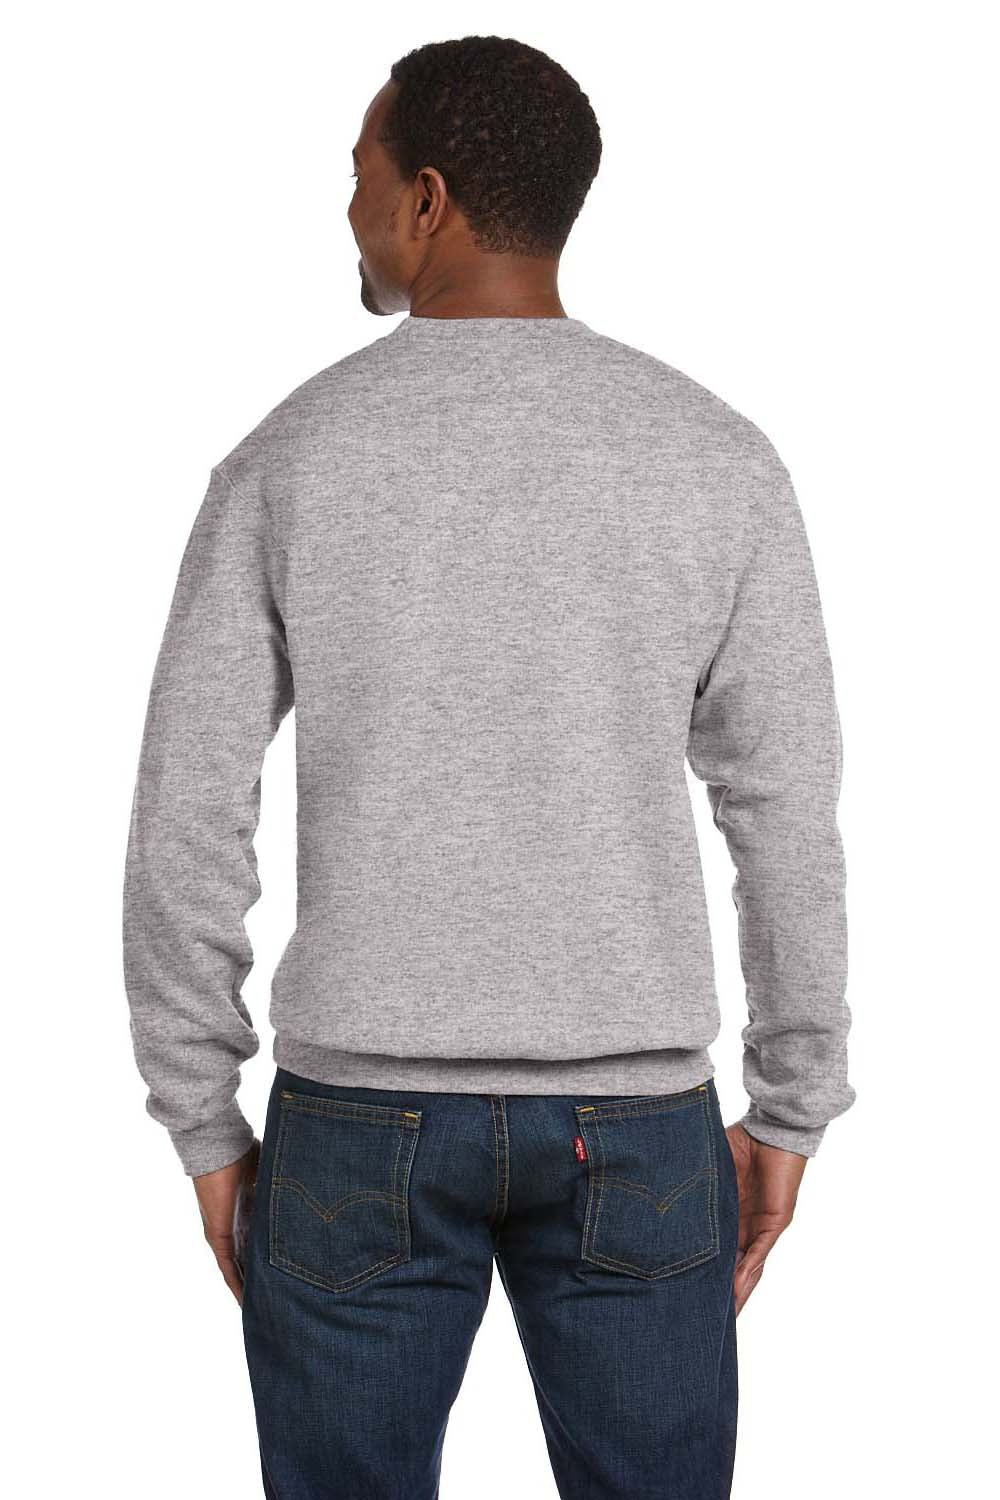 Hanes P160 Mens EcoSmart Print Pro XP Fleece Crewneck Sweatshirt Light Steel Grey Back